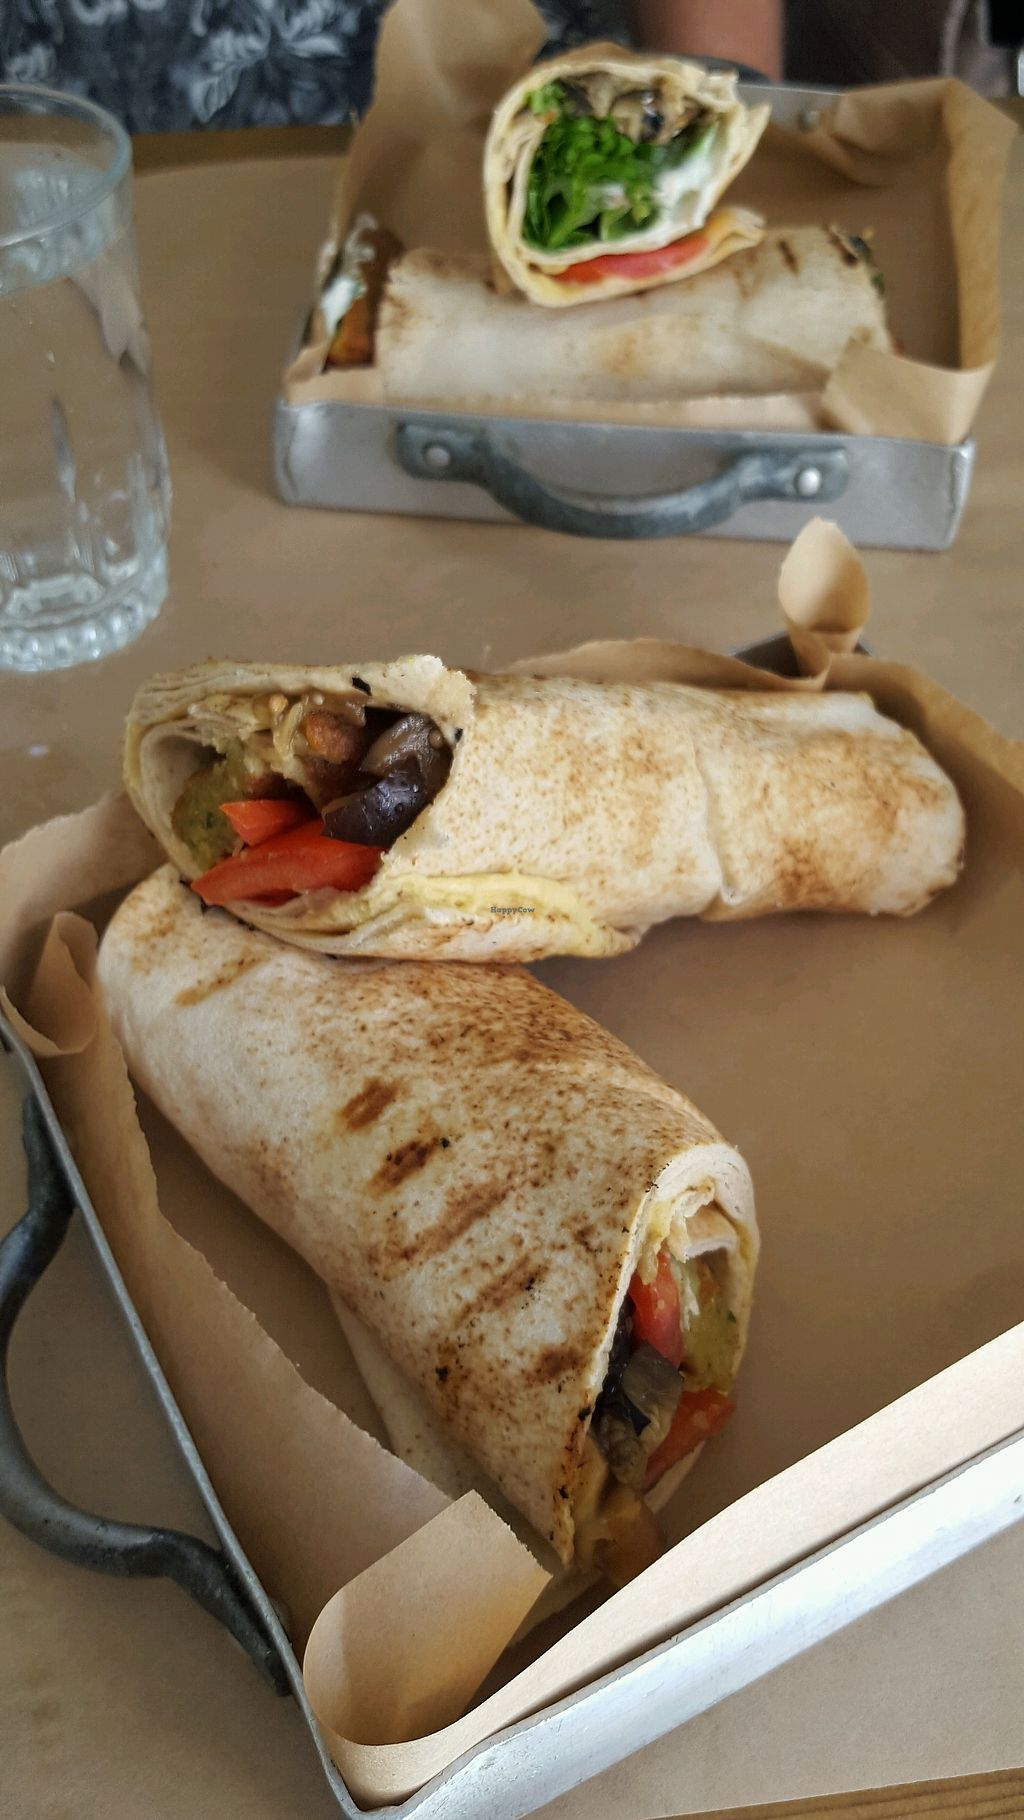 """Photo of Pane e Souvlaki  by <a href=""""/members/profile/JudithRuland"""">JudithRuland</a> <br/>Falafel roll <br/> September 19, 2017  - <a href='/contact/abuse/image/61709/306195'>Report</a>"""